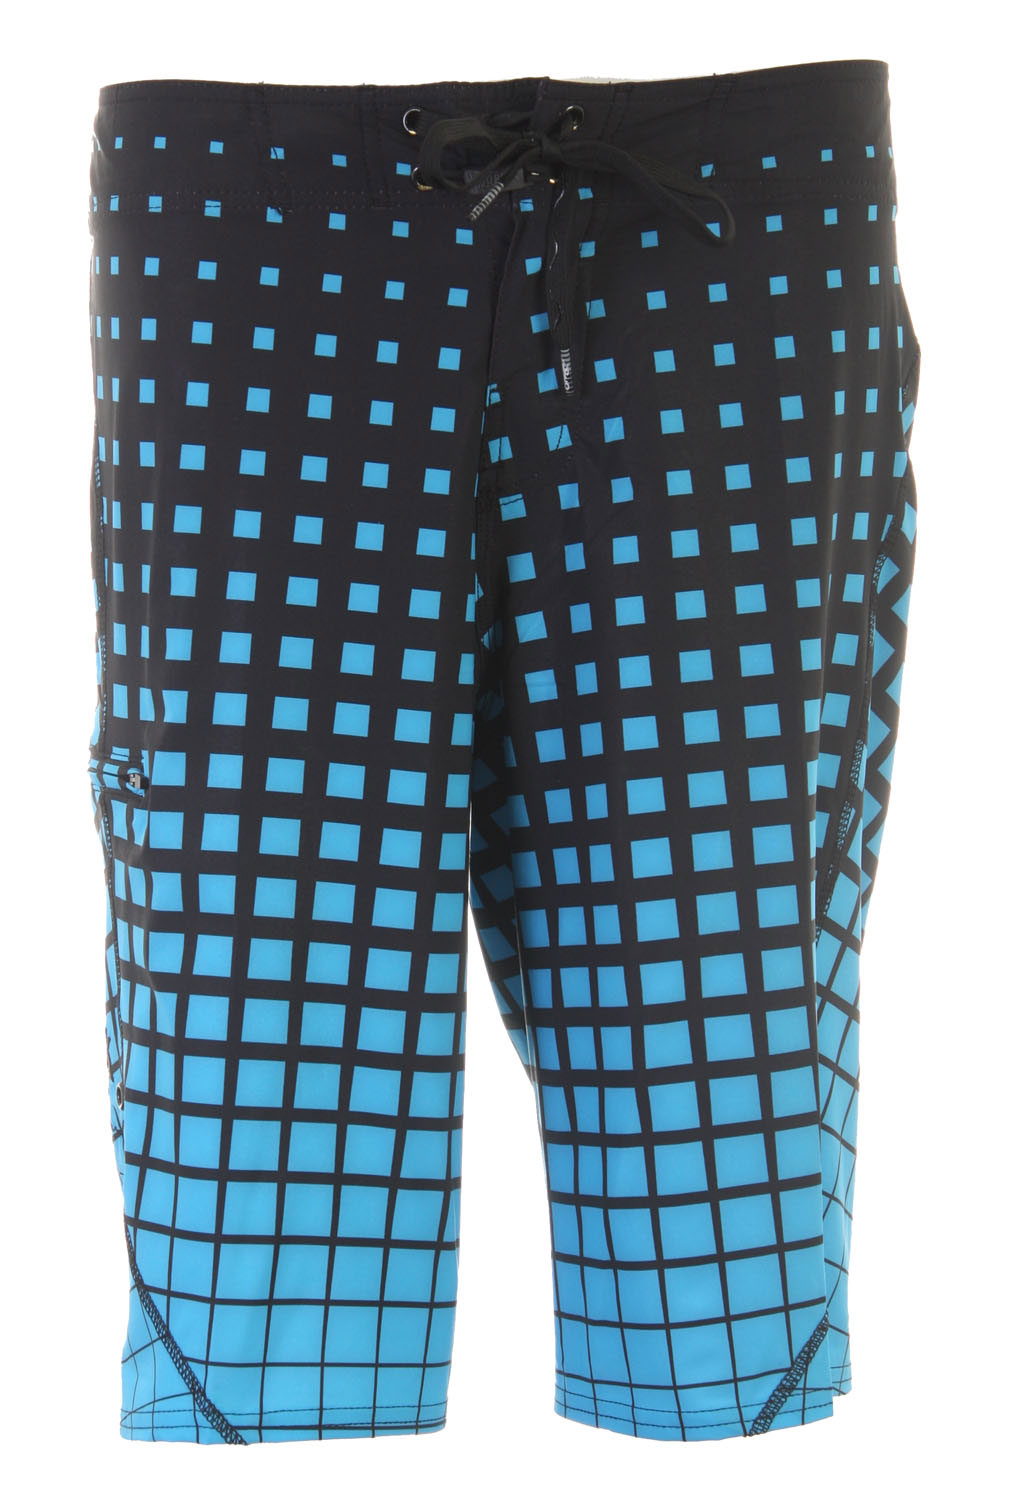 "Fitness The O'Neill Hyperfreak Boardshorts offers a simple yet unique design featuring a specially engineered print all over. Subtle due its monochromatic design, it's so classy, you can rock these anywhere. This hyperstretch pair of shorts is ultra comfortable, perfect and ideal for summer active wear. Run around, stay active with guaranteed comfort.Key Features of the O'Neill Hyperfreak Boardshorts: Hyperstretch 21"" Outseam Engineered Printed Boardshort with Superfly 2.0 Closure Locking Drawcord No Inseam Welt Zip Pocket Screened and Applique Logos - $36.37"